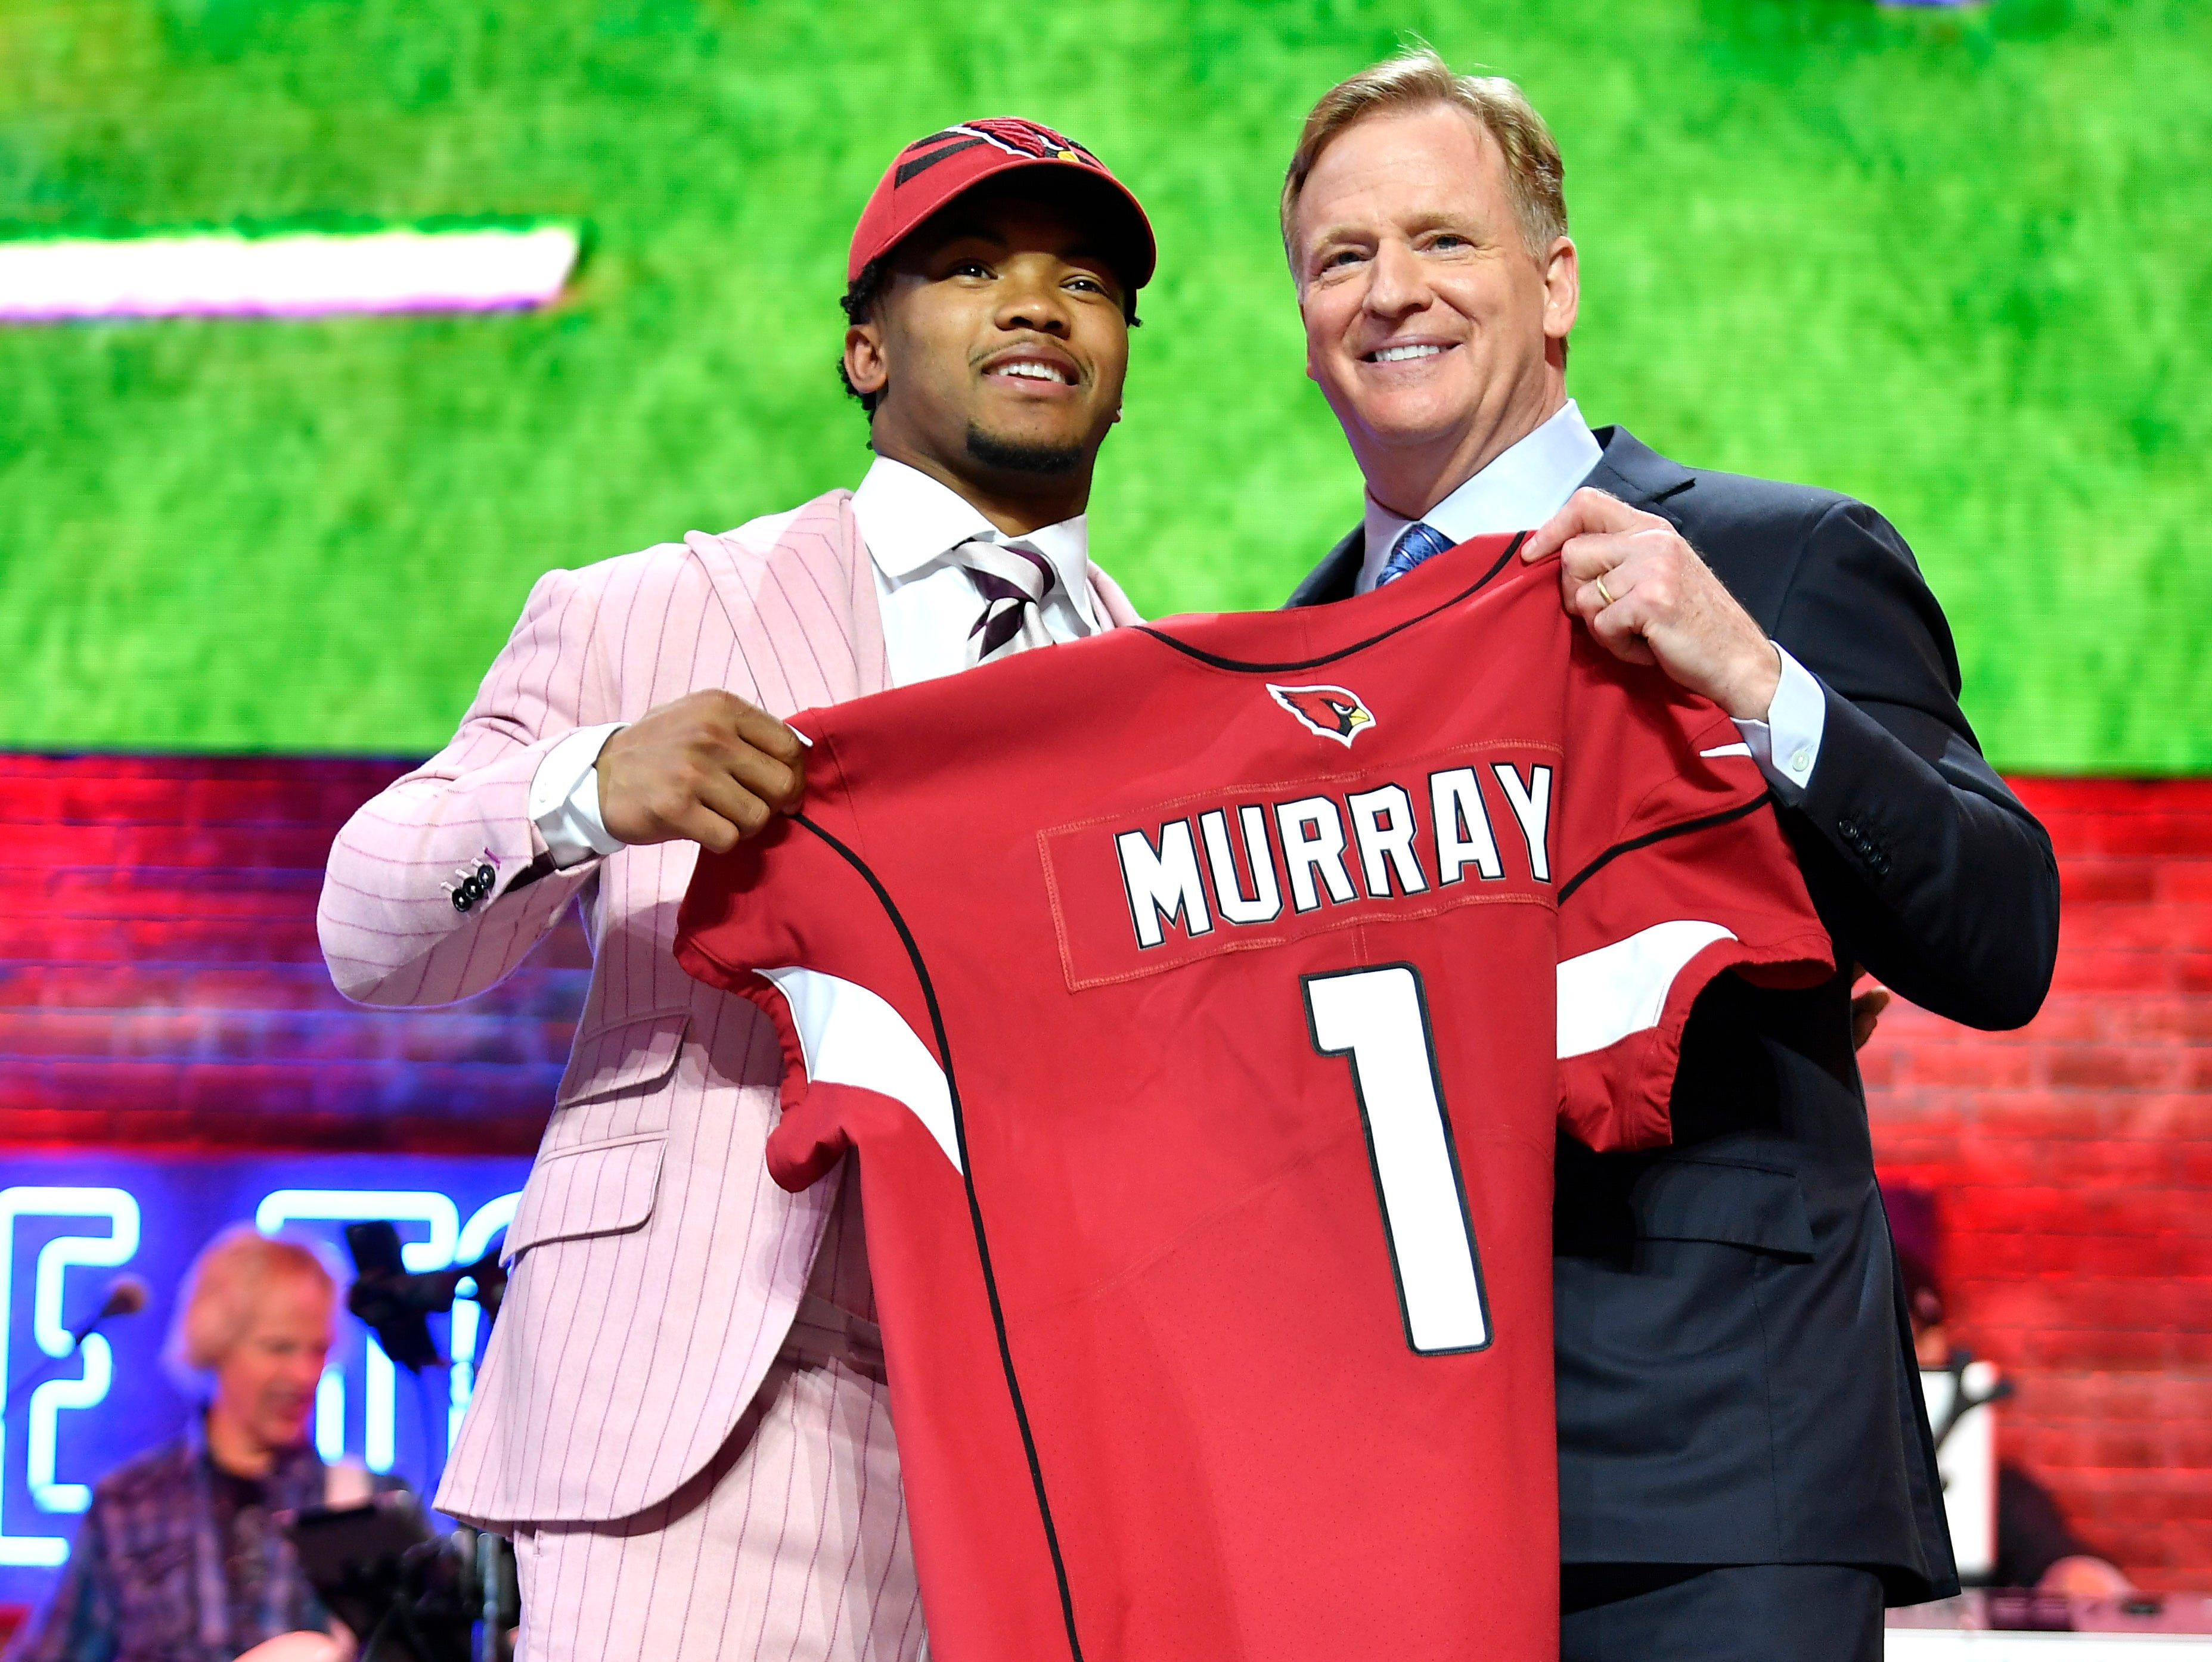 Kyler Murray poses with NFL Commissioner Roger Goodell after being picked first by the Arizona Cardinals during the first round of the NFL Draft Thursday, April 25, 2019, in Nashville, Tenn.